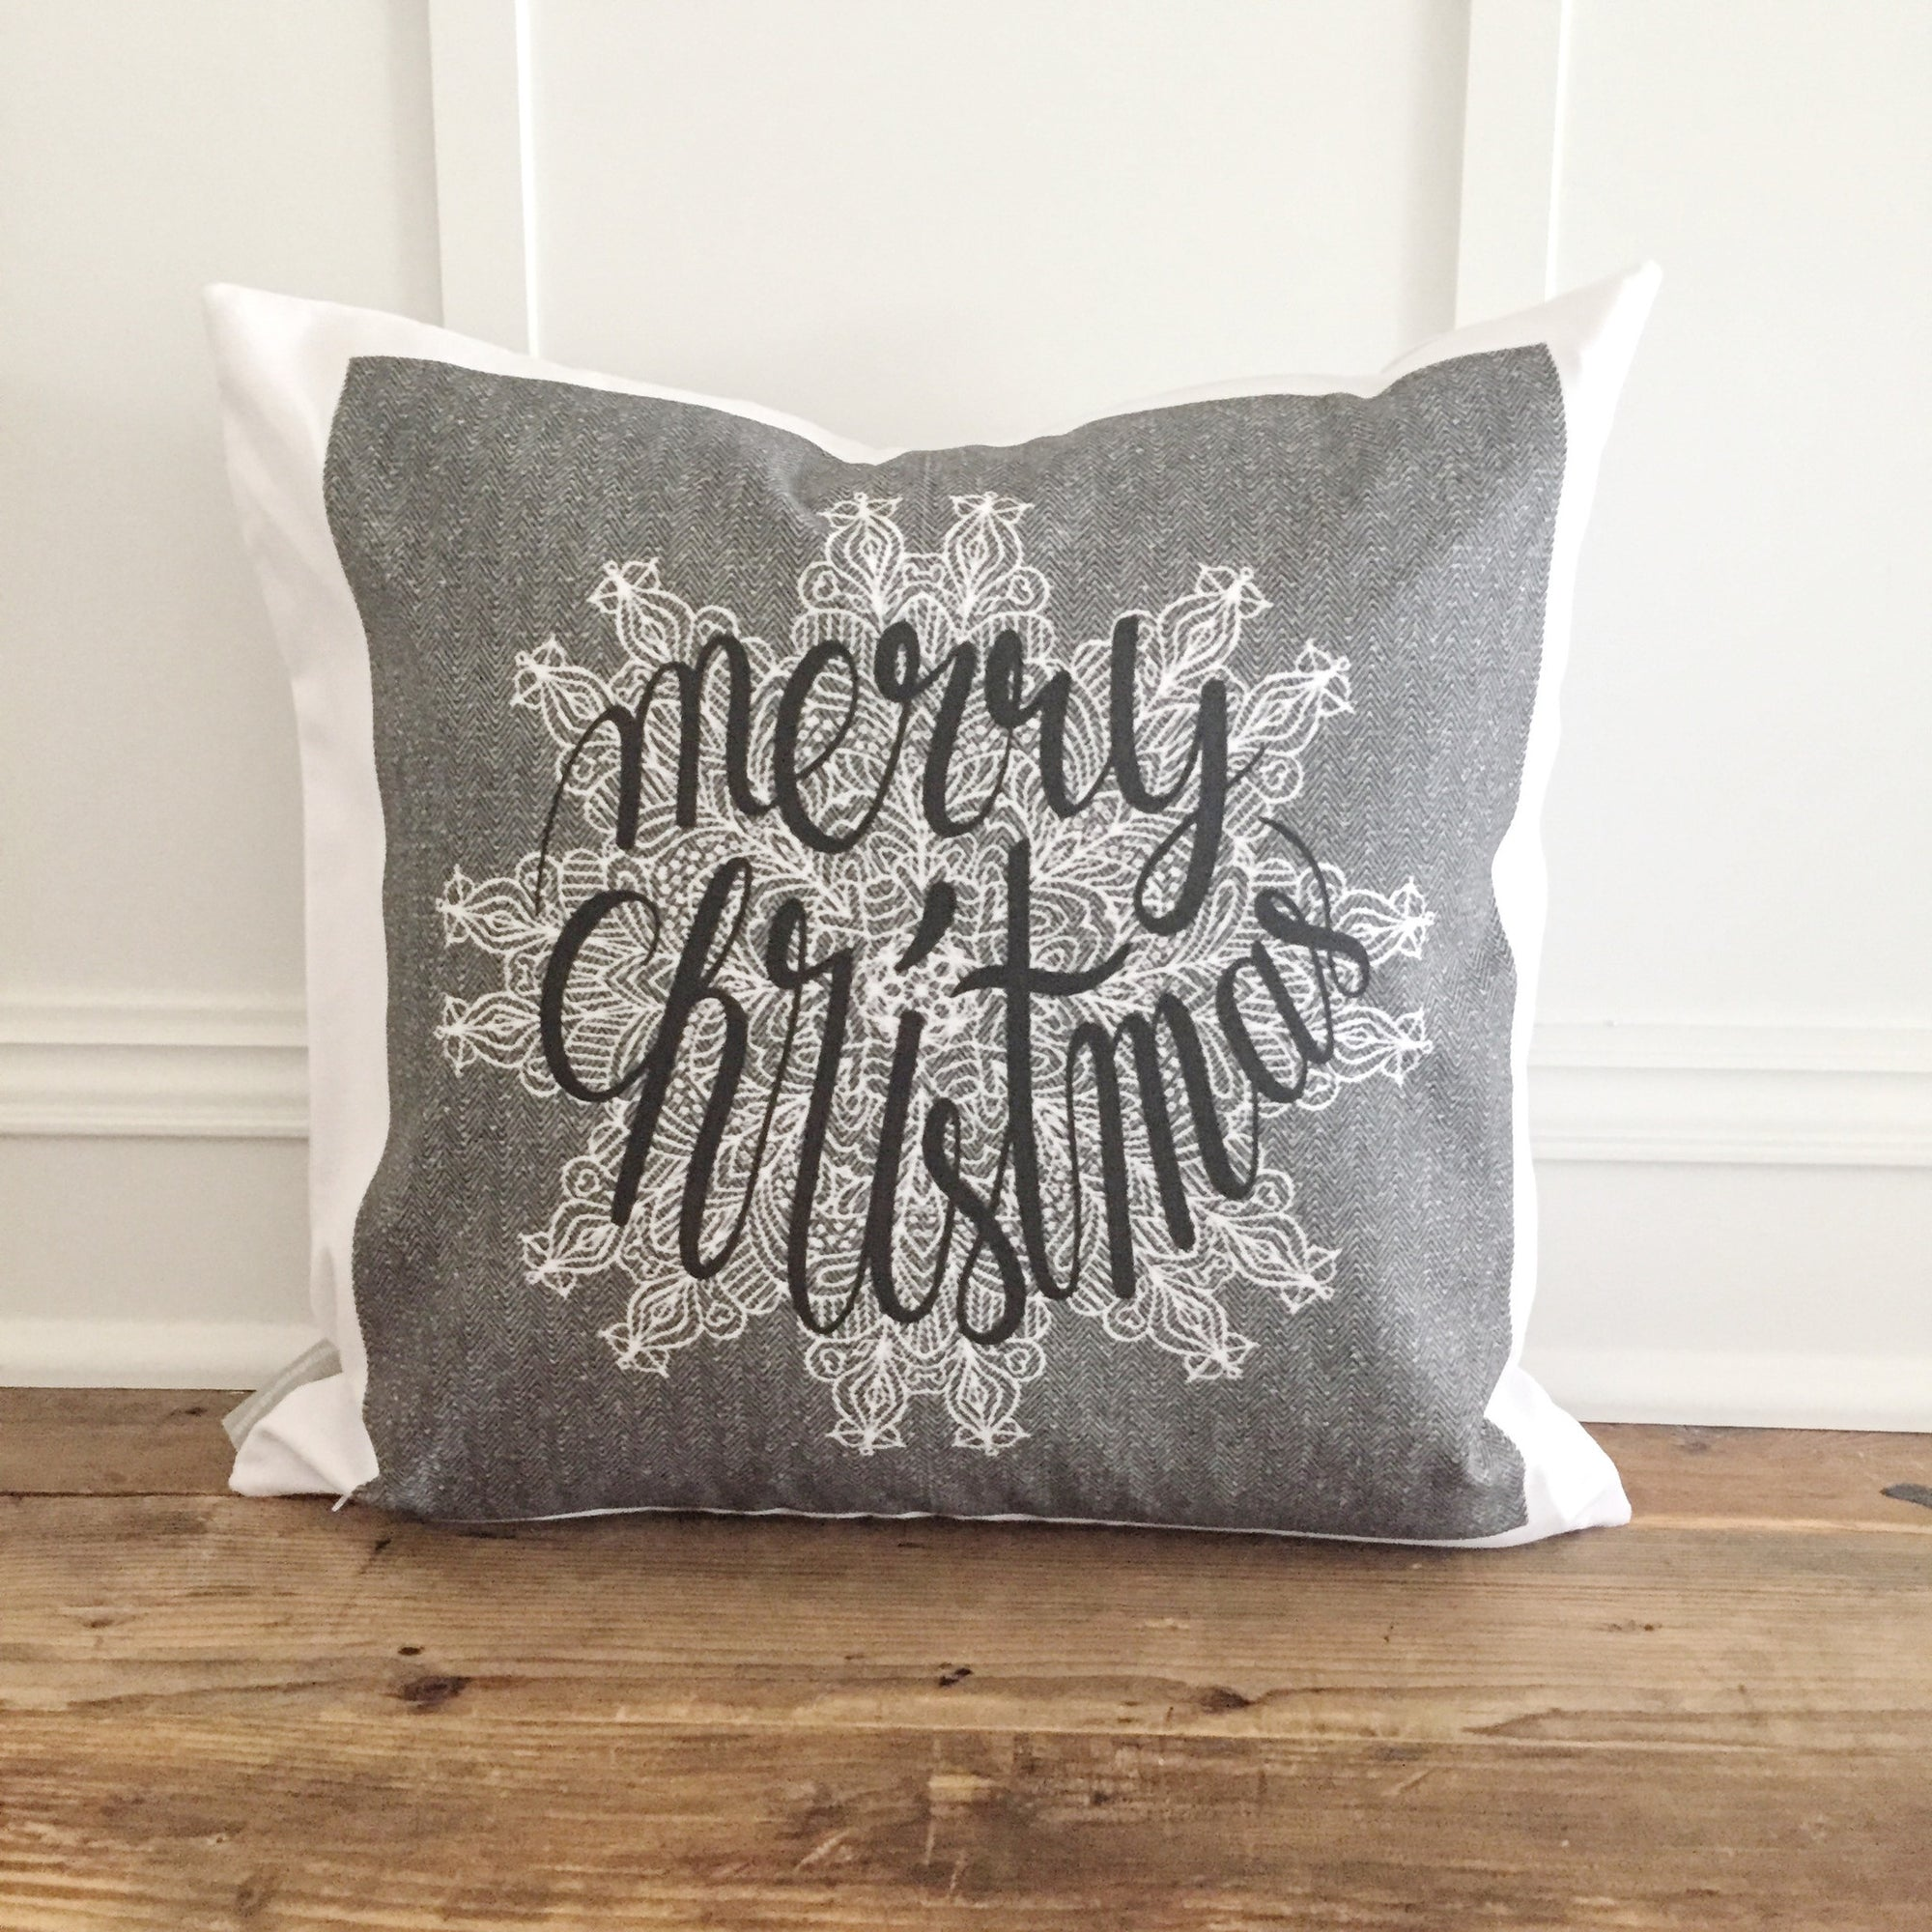 Herringbone Merry Christmas Pillow Cover - Linen and Ivory